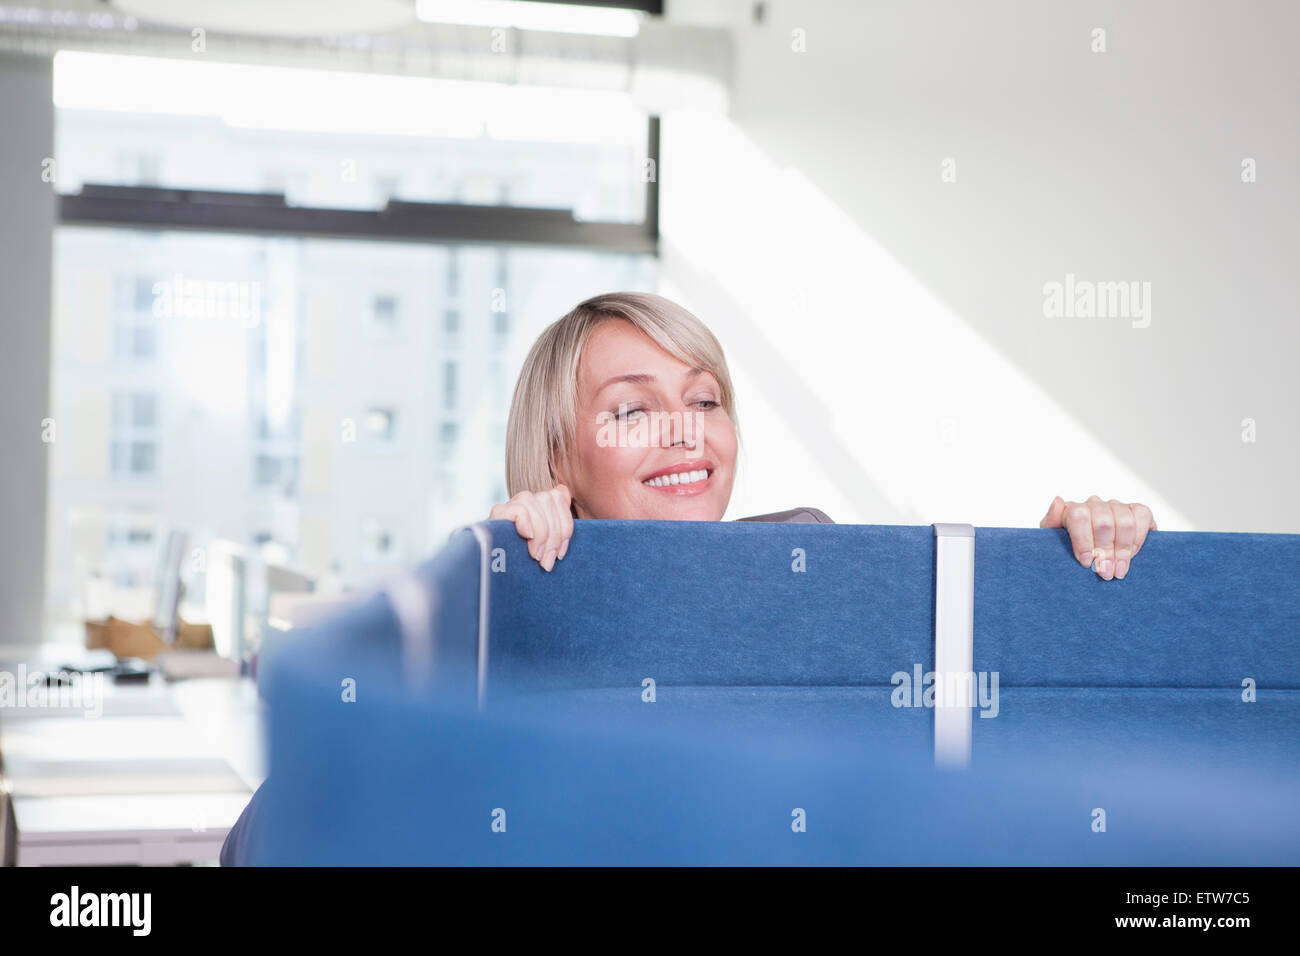 Businesswoman looking over partition in office - Stock Image